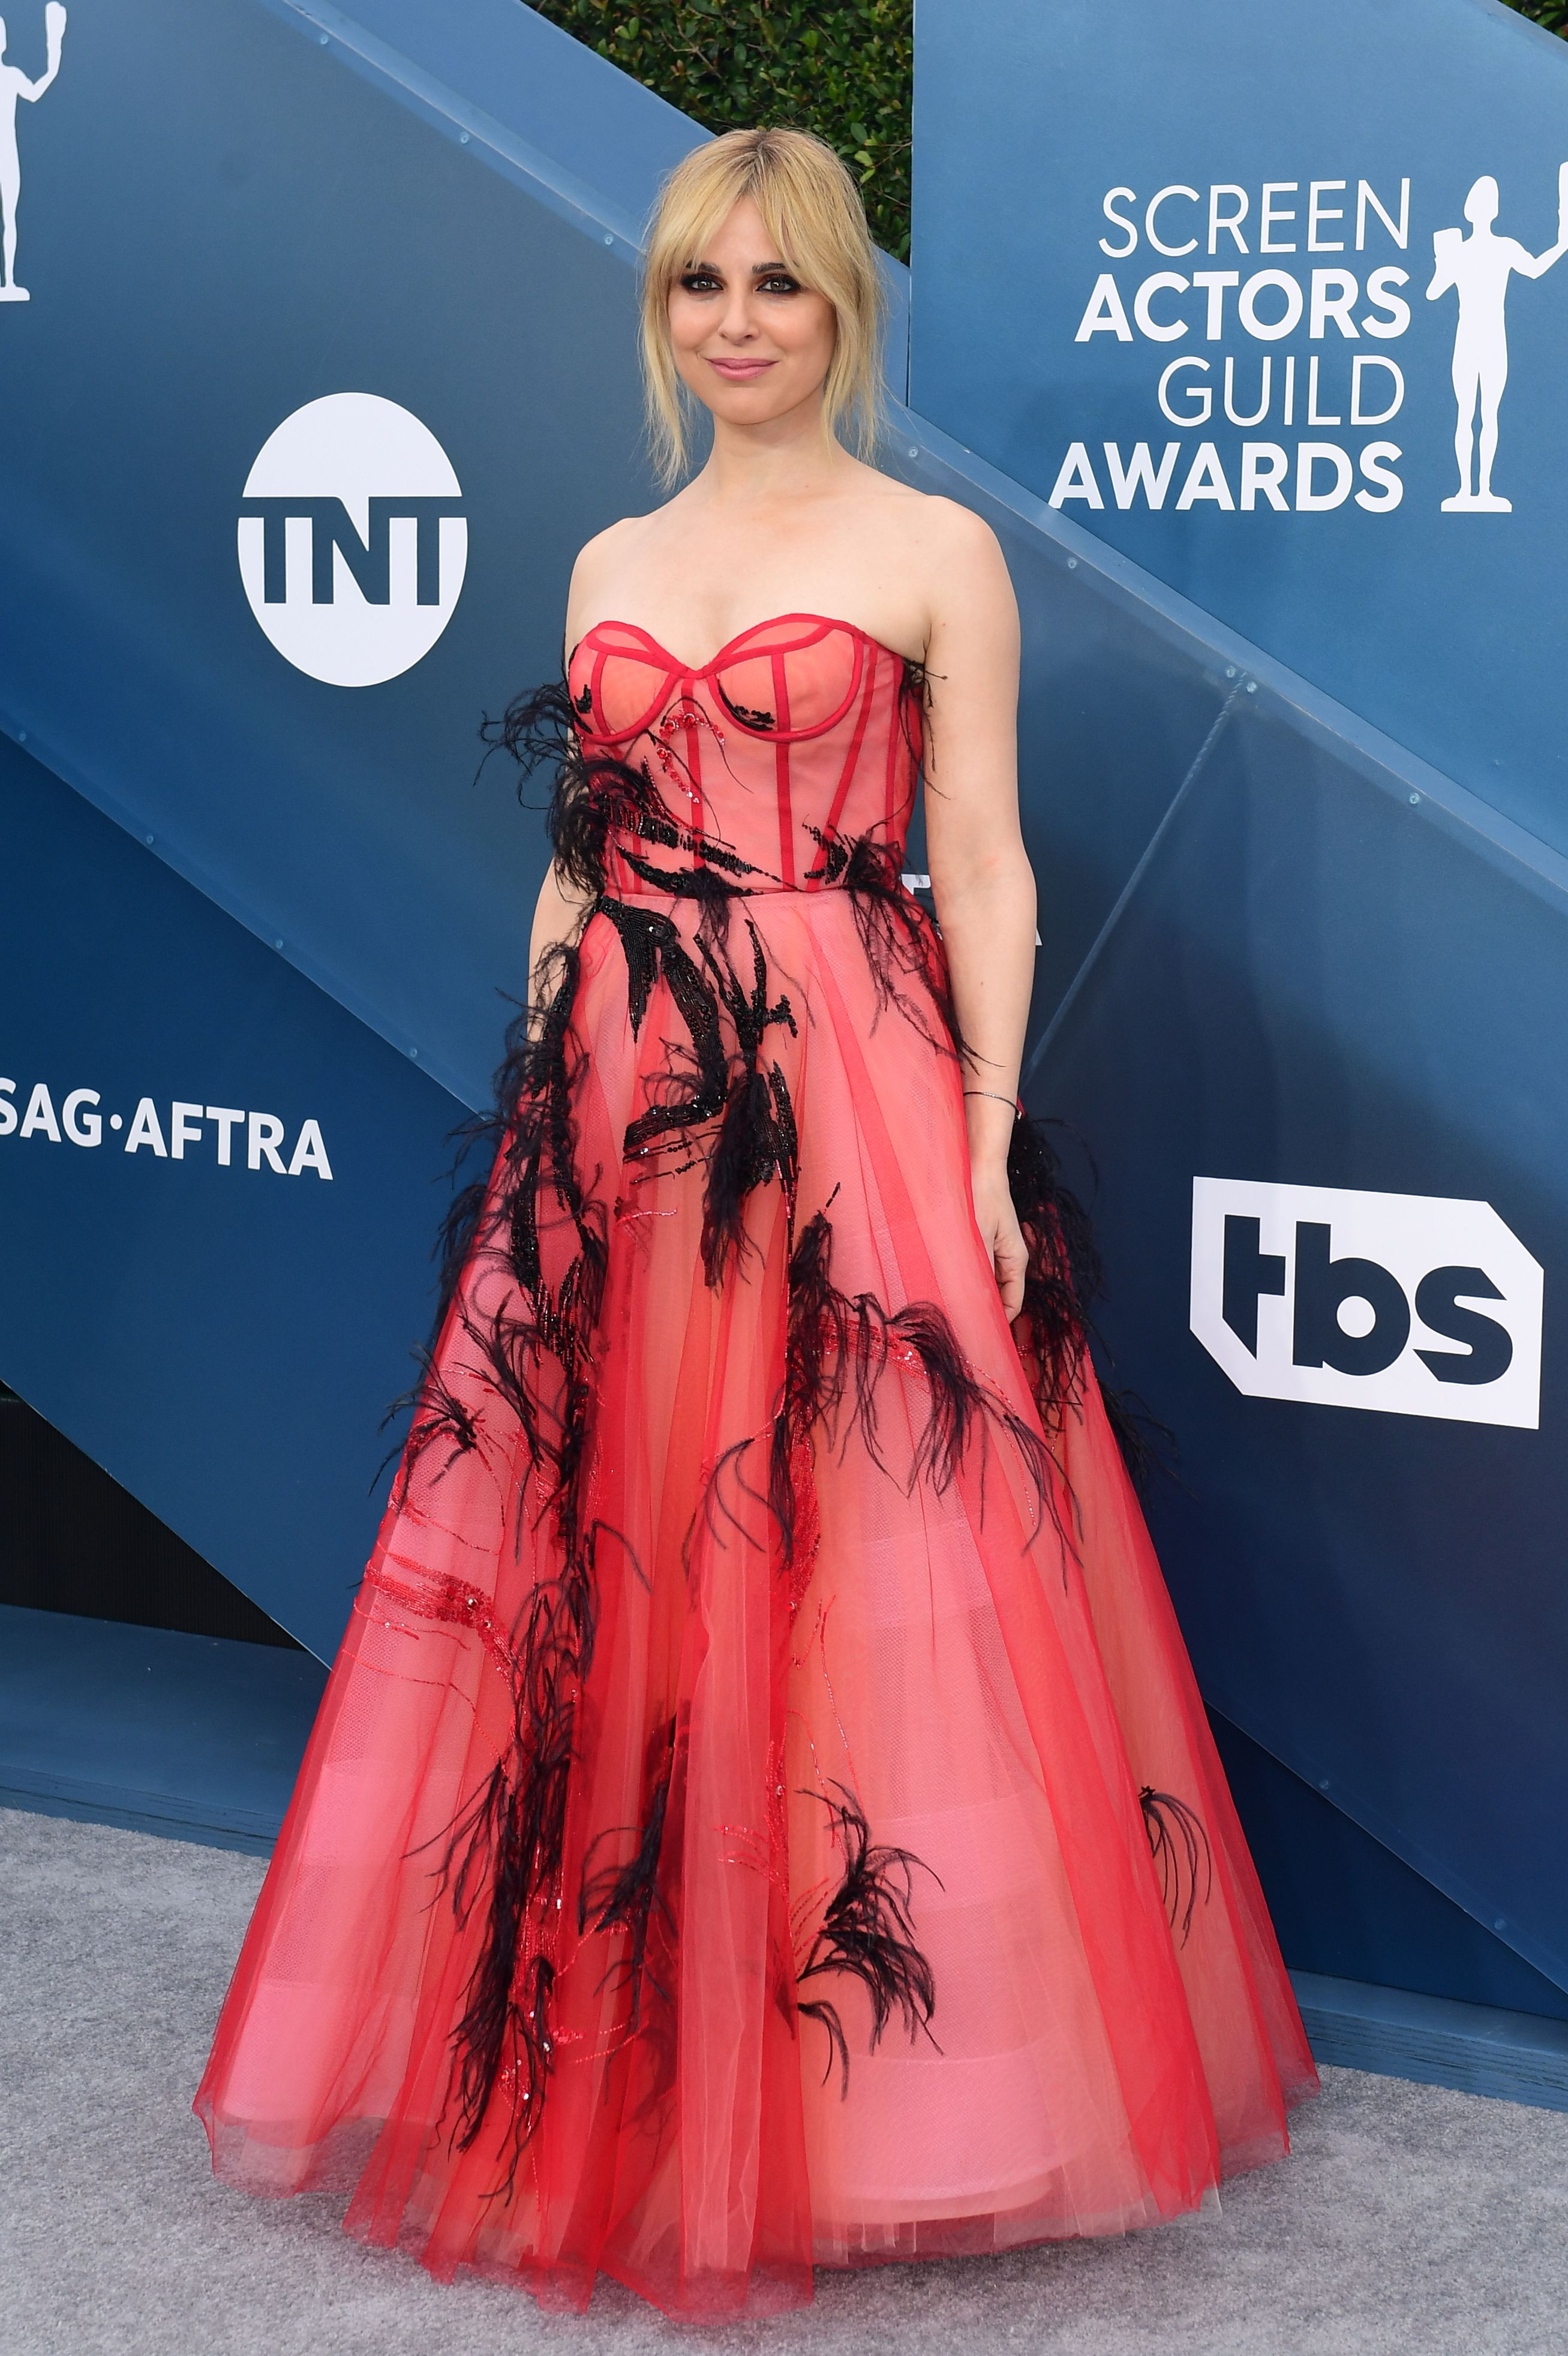 US actress Cara Buono arrives for the 26th Annual Screen Actors Guild Awards at the Shrine Auditorium in Los Angeles on January 19, 2020. (Photo by FREDERIC J. BROWN / AFP) (Photo by FREDERIC J. BROWN/AFP via Getty Images)